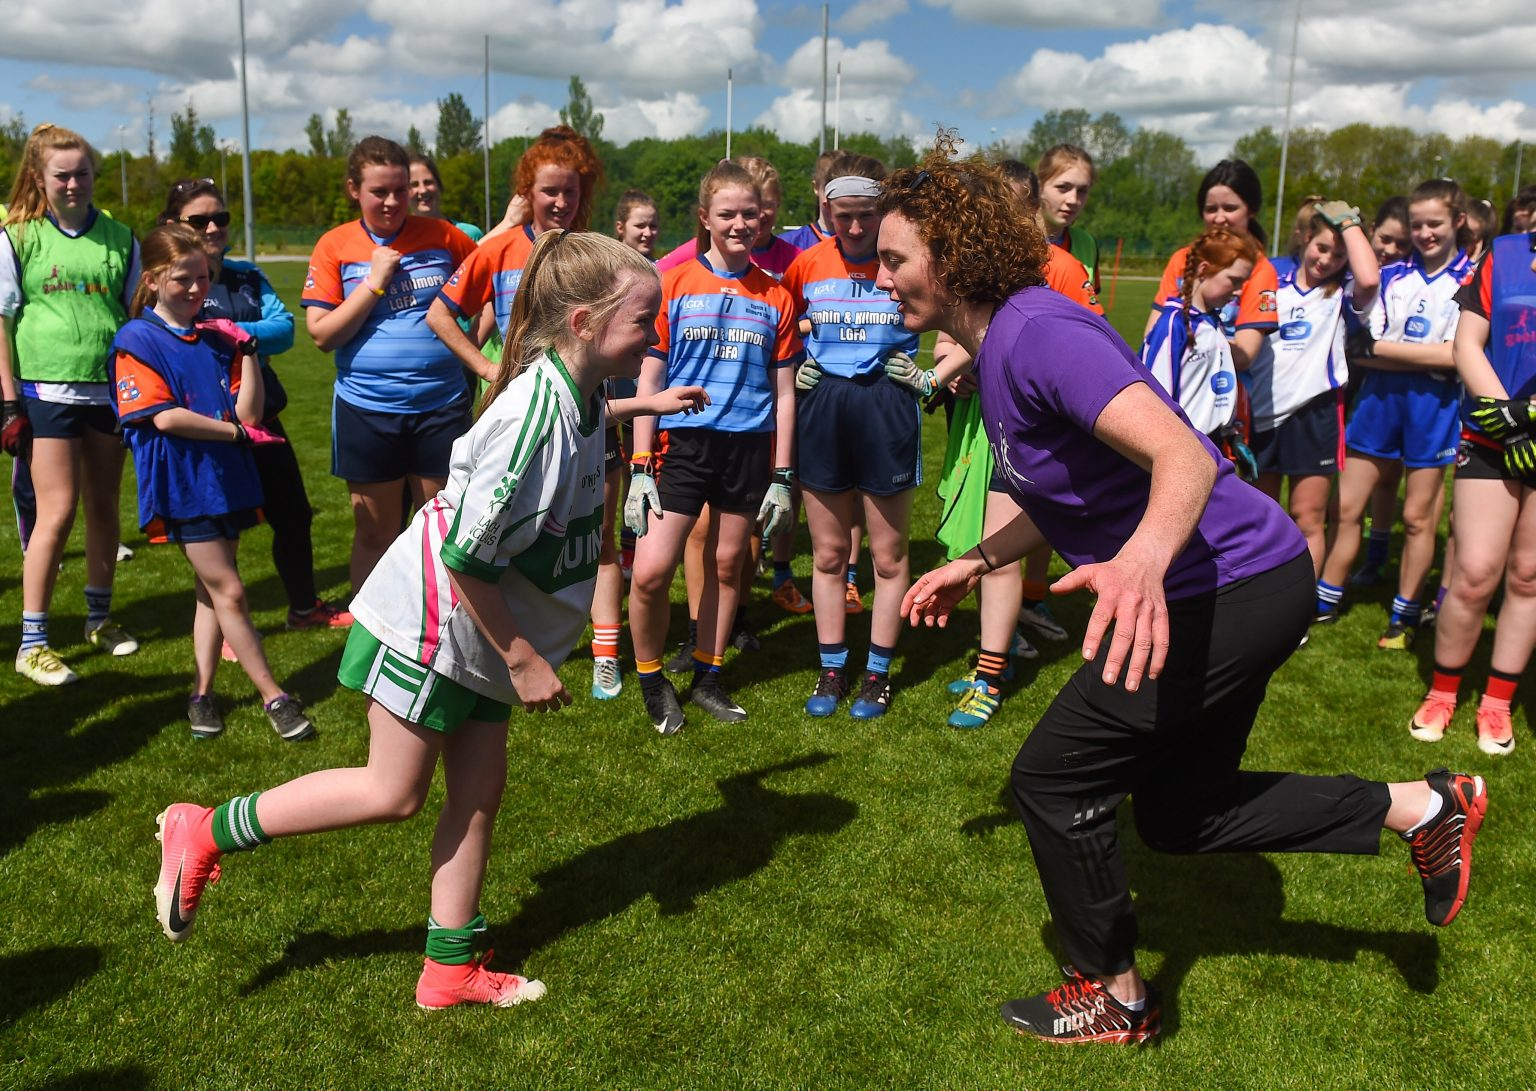 Young Player in white jersey with red and green stripes and a coach in a purple jersey face each other standing on one leg at the Gaelic4Teens programme